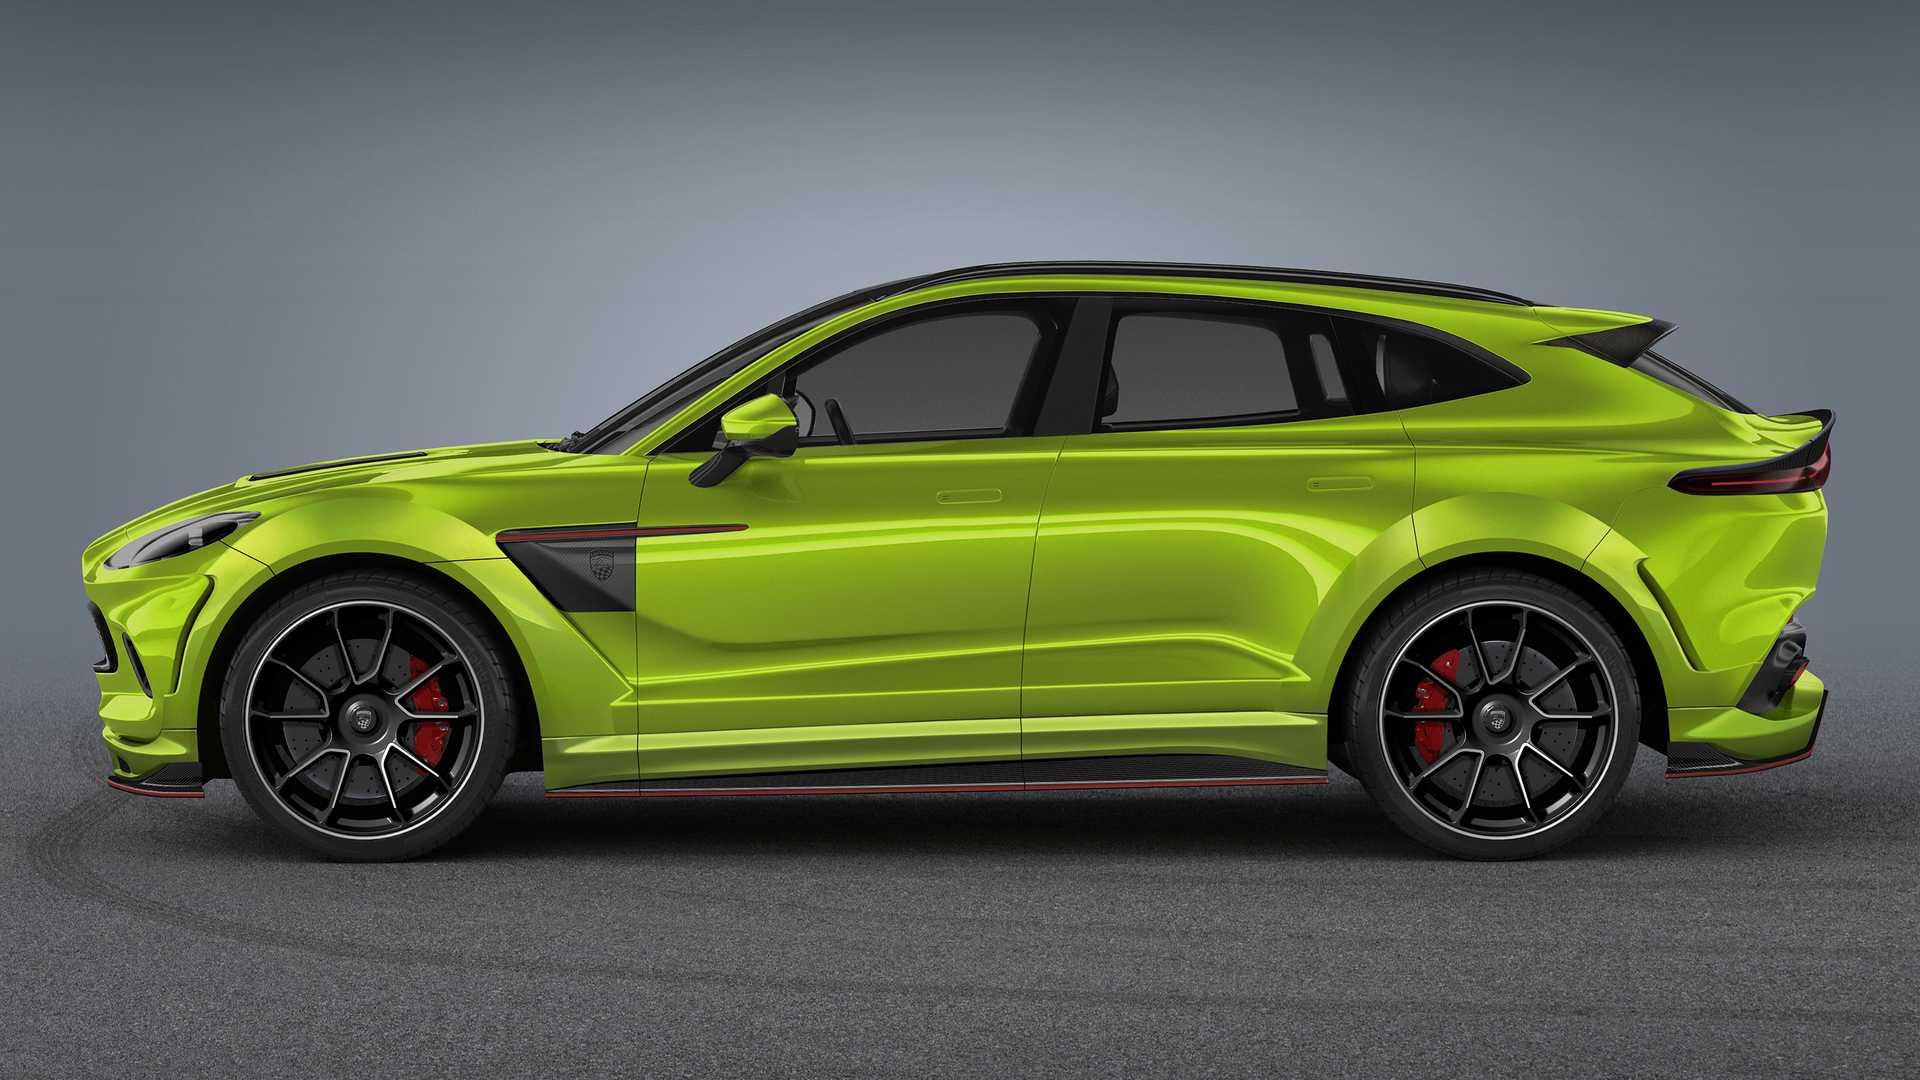 aston-martin-dbx-by-lumma-design-2